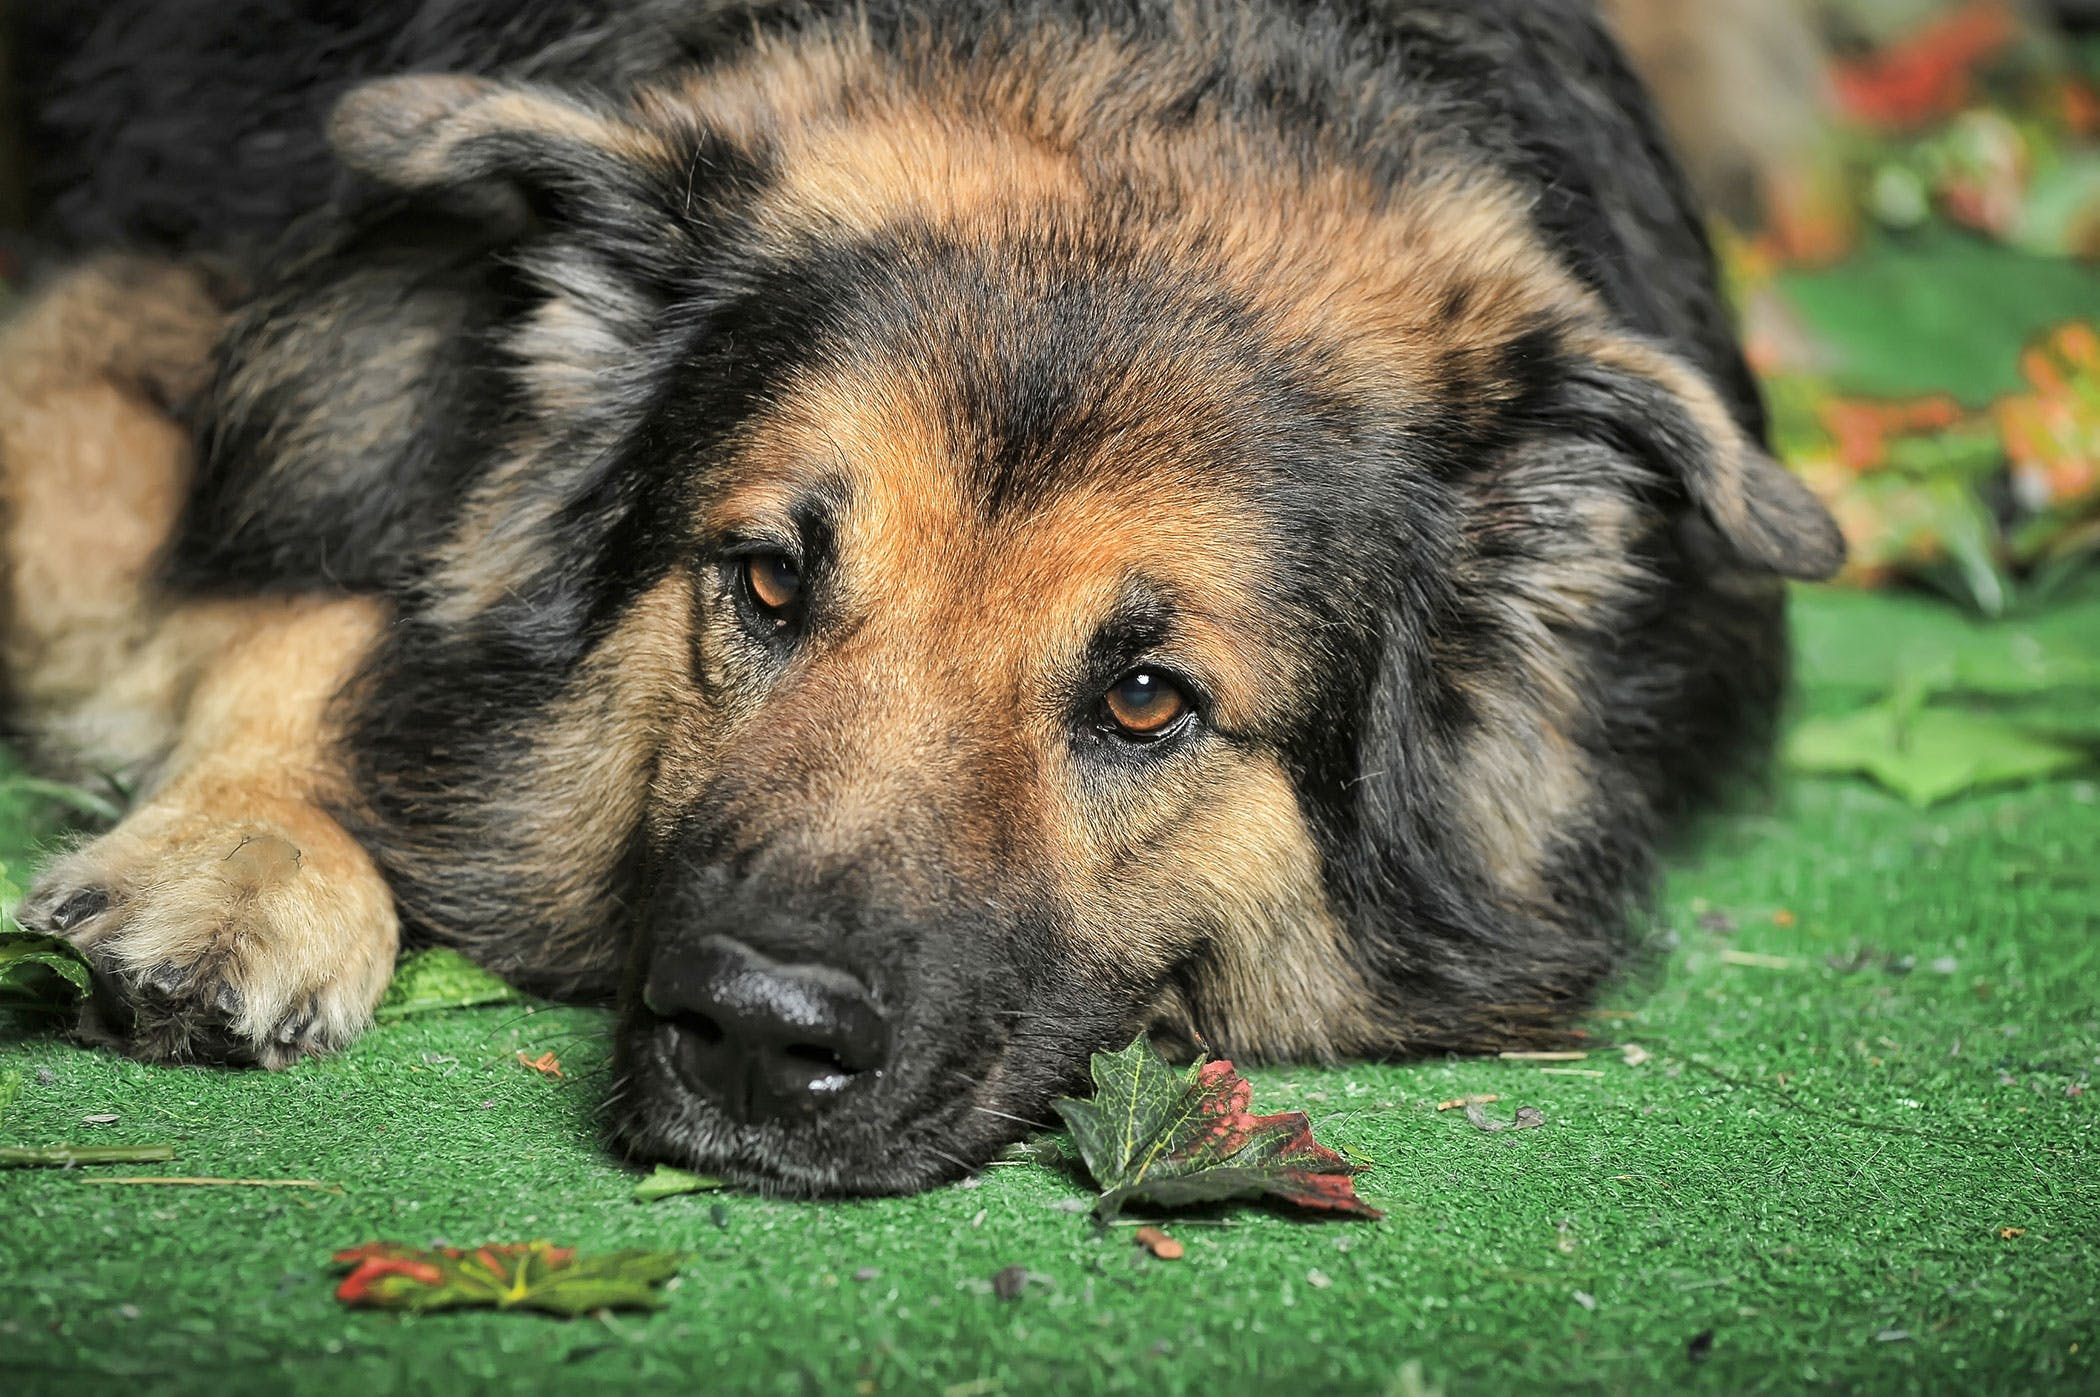 ambien poisoning in dogs symptoms causes diagnosis treatment